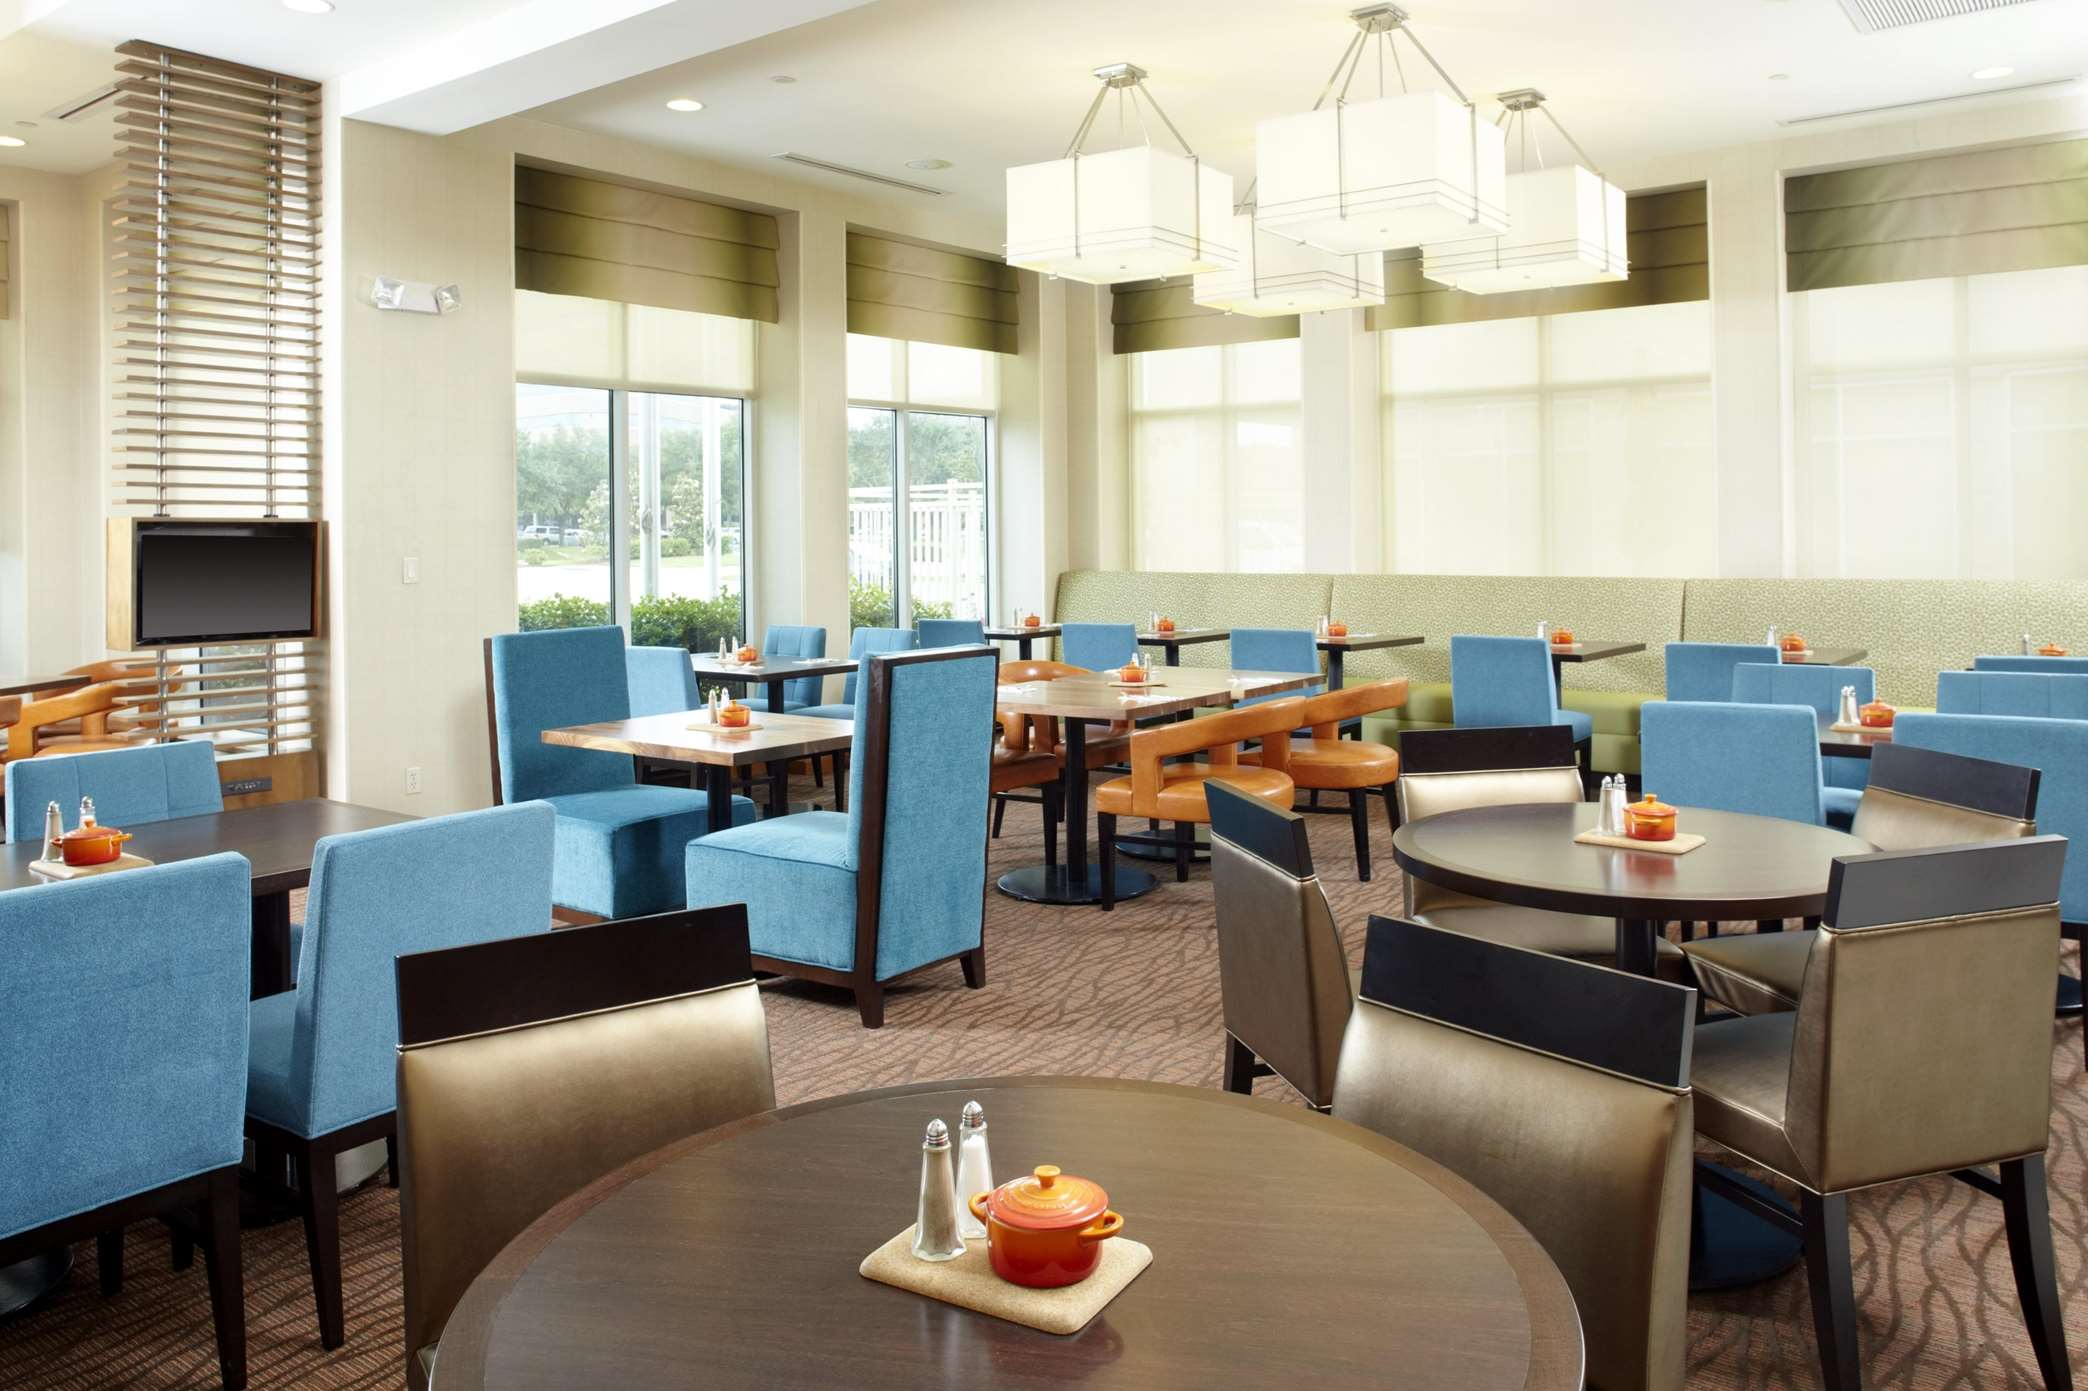 Hilton Garden Inn Dallas/Arlington image 35